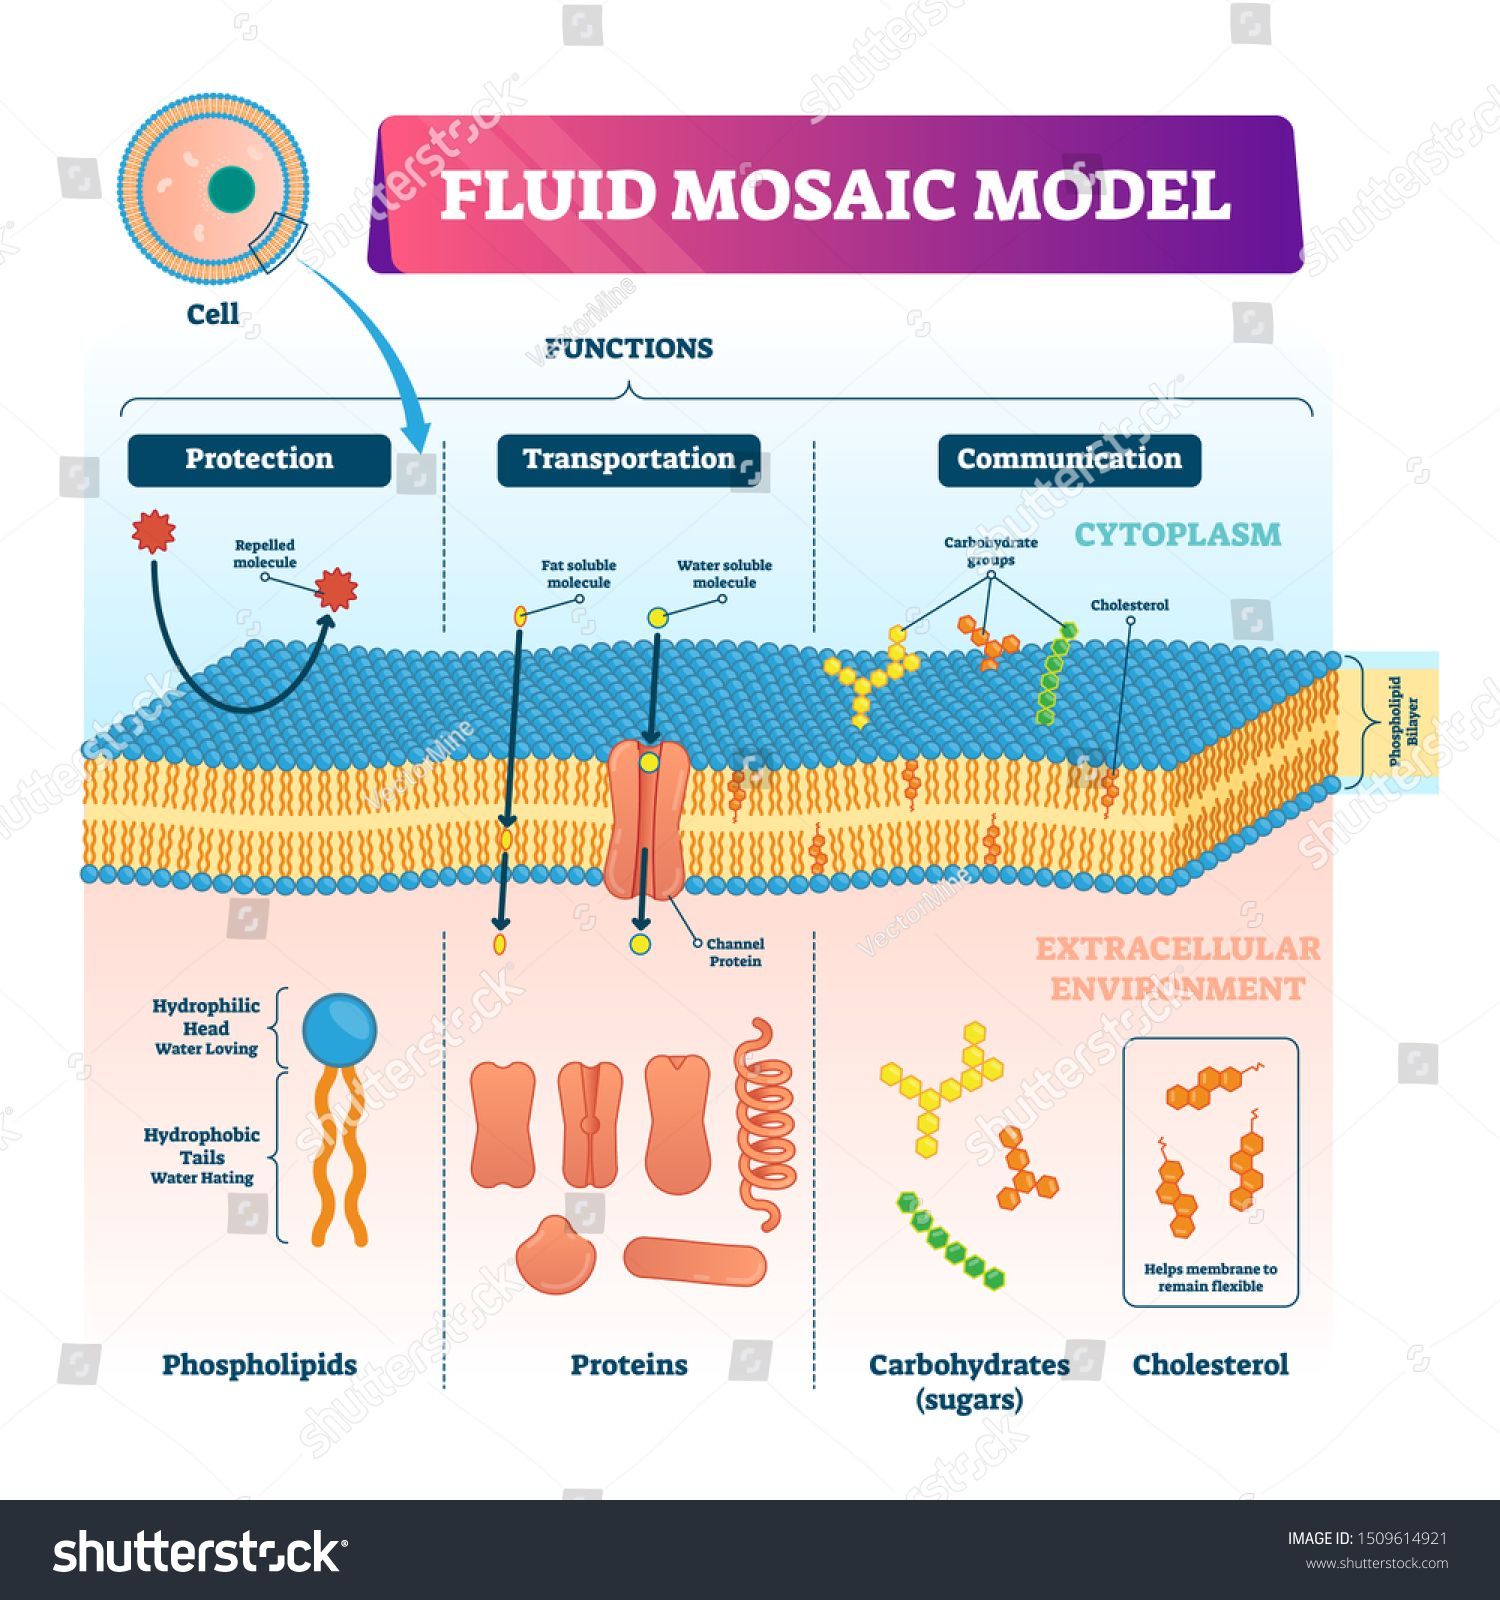 Fluid Mosaic Model Vector Illustration Labeled Cell Membrane Structure Infographic Educational Sche Cell Membrane Structure Membrane Structure Cell Structure [ 1600 x 1500 Pixel ]